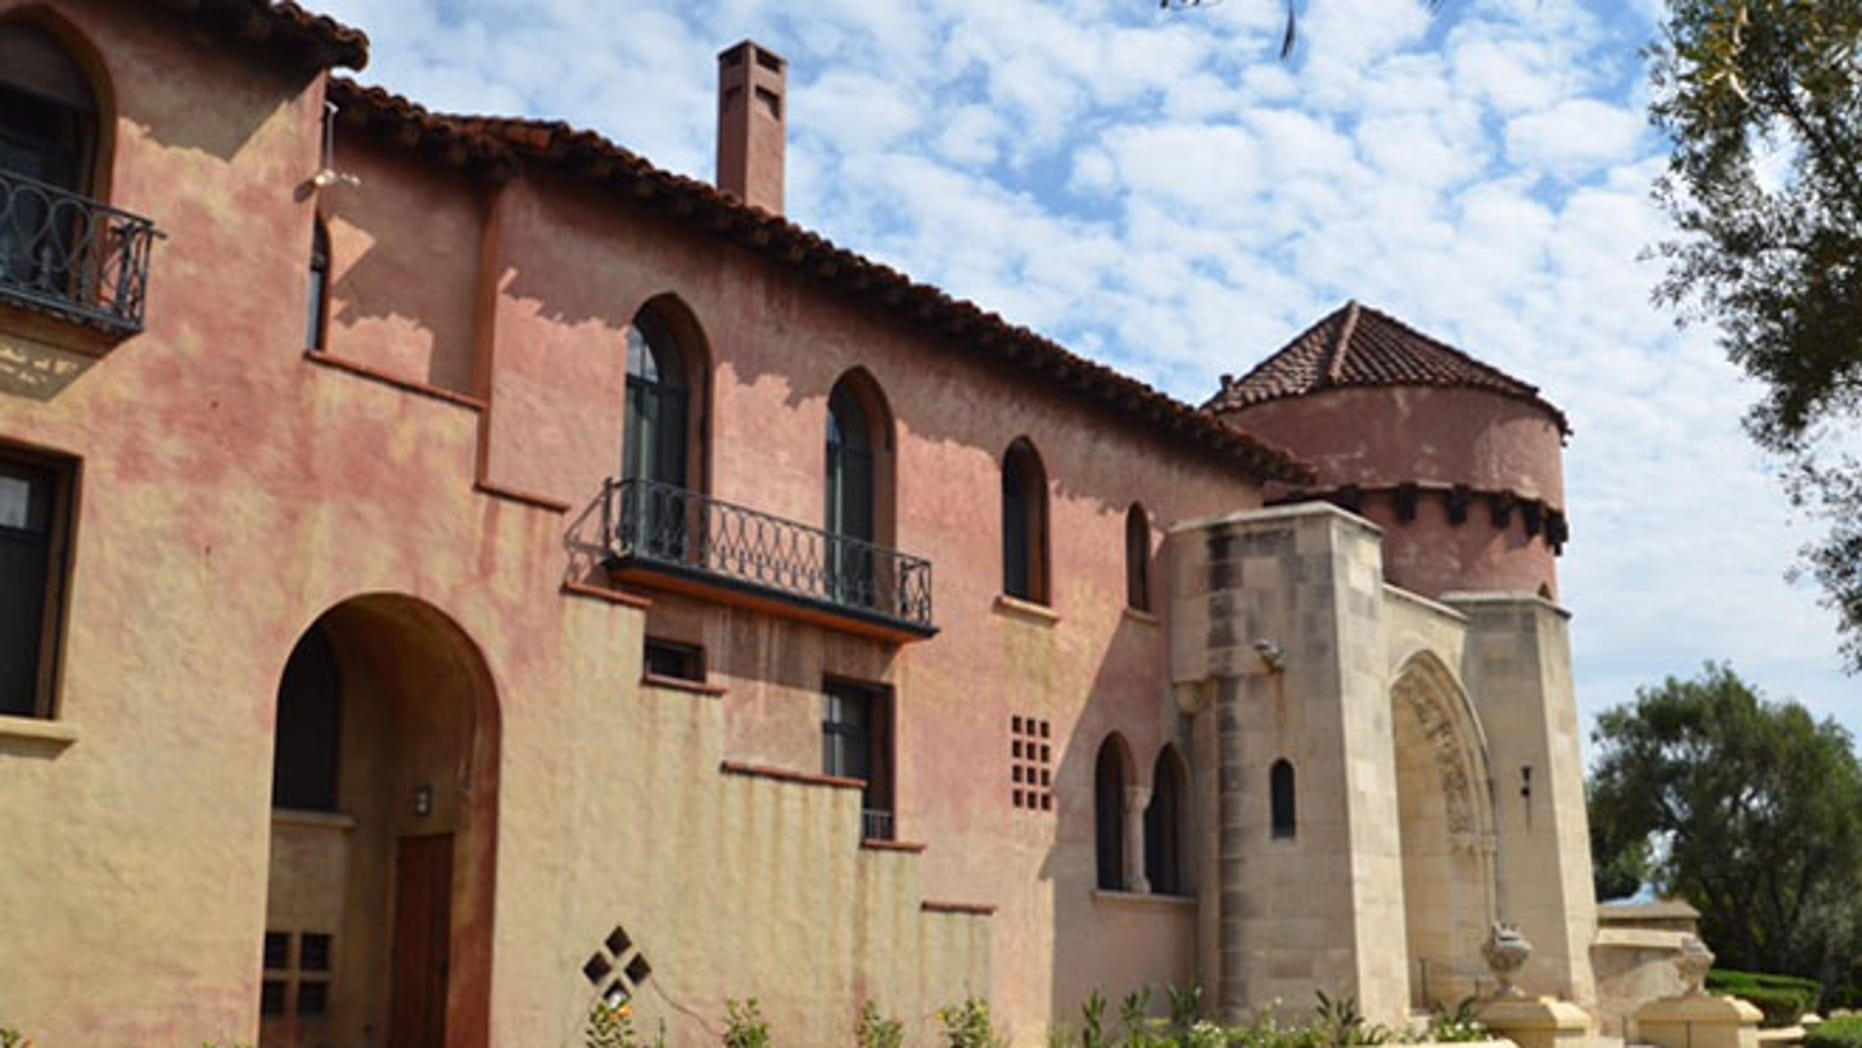 The convent, once home to wealthy philanthropist Earle Anthony, has belonged to the order for 40 years. (FoxNews.com)